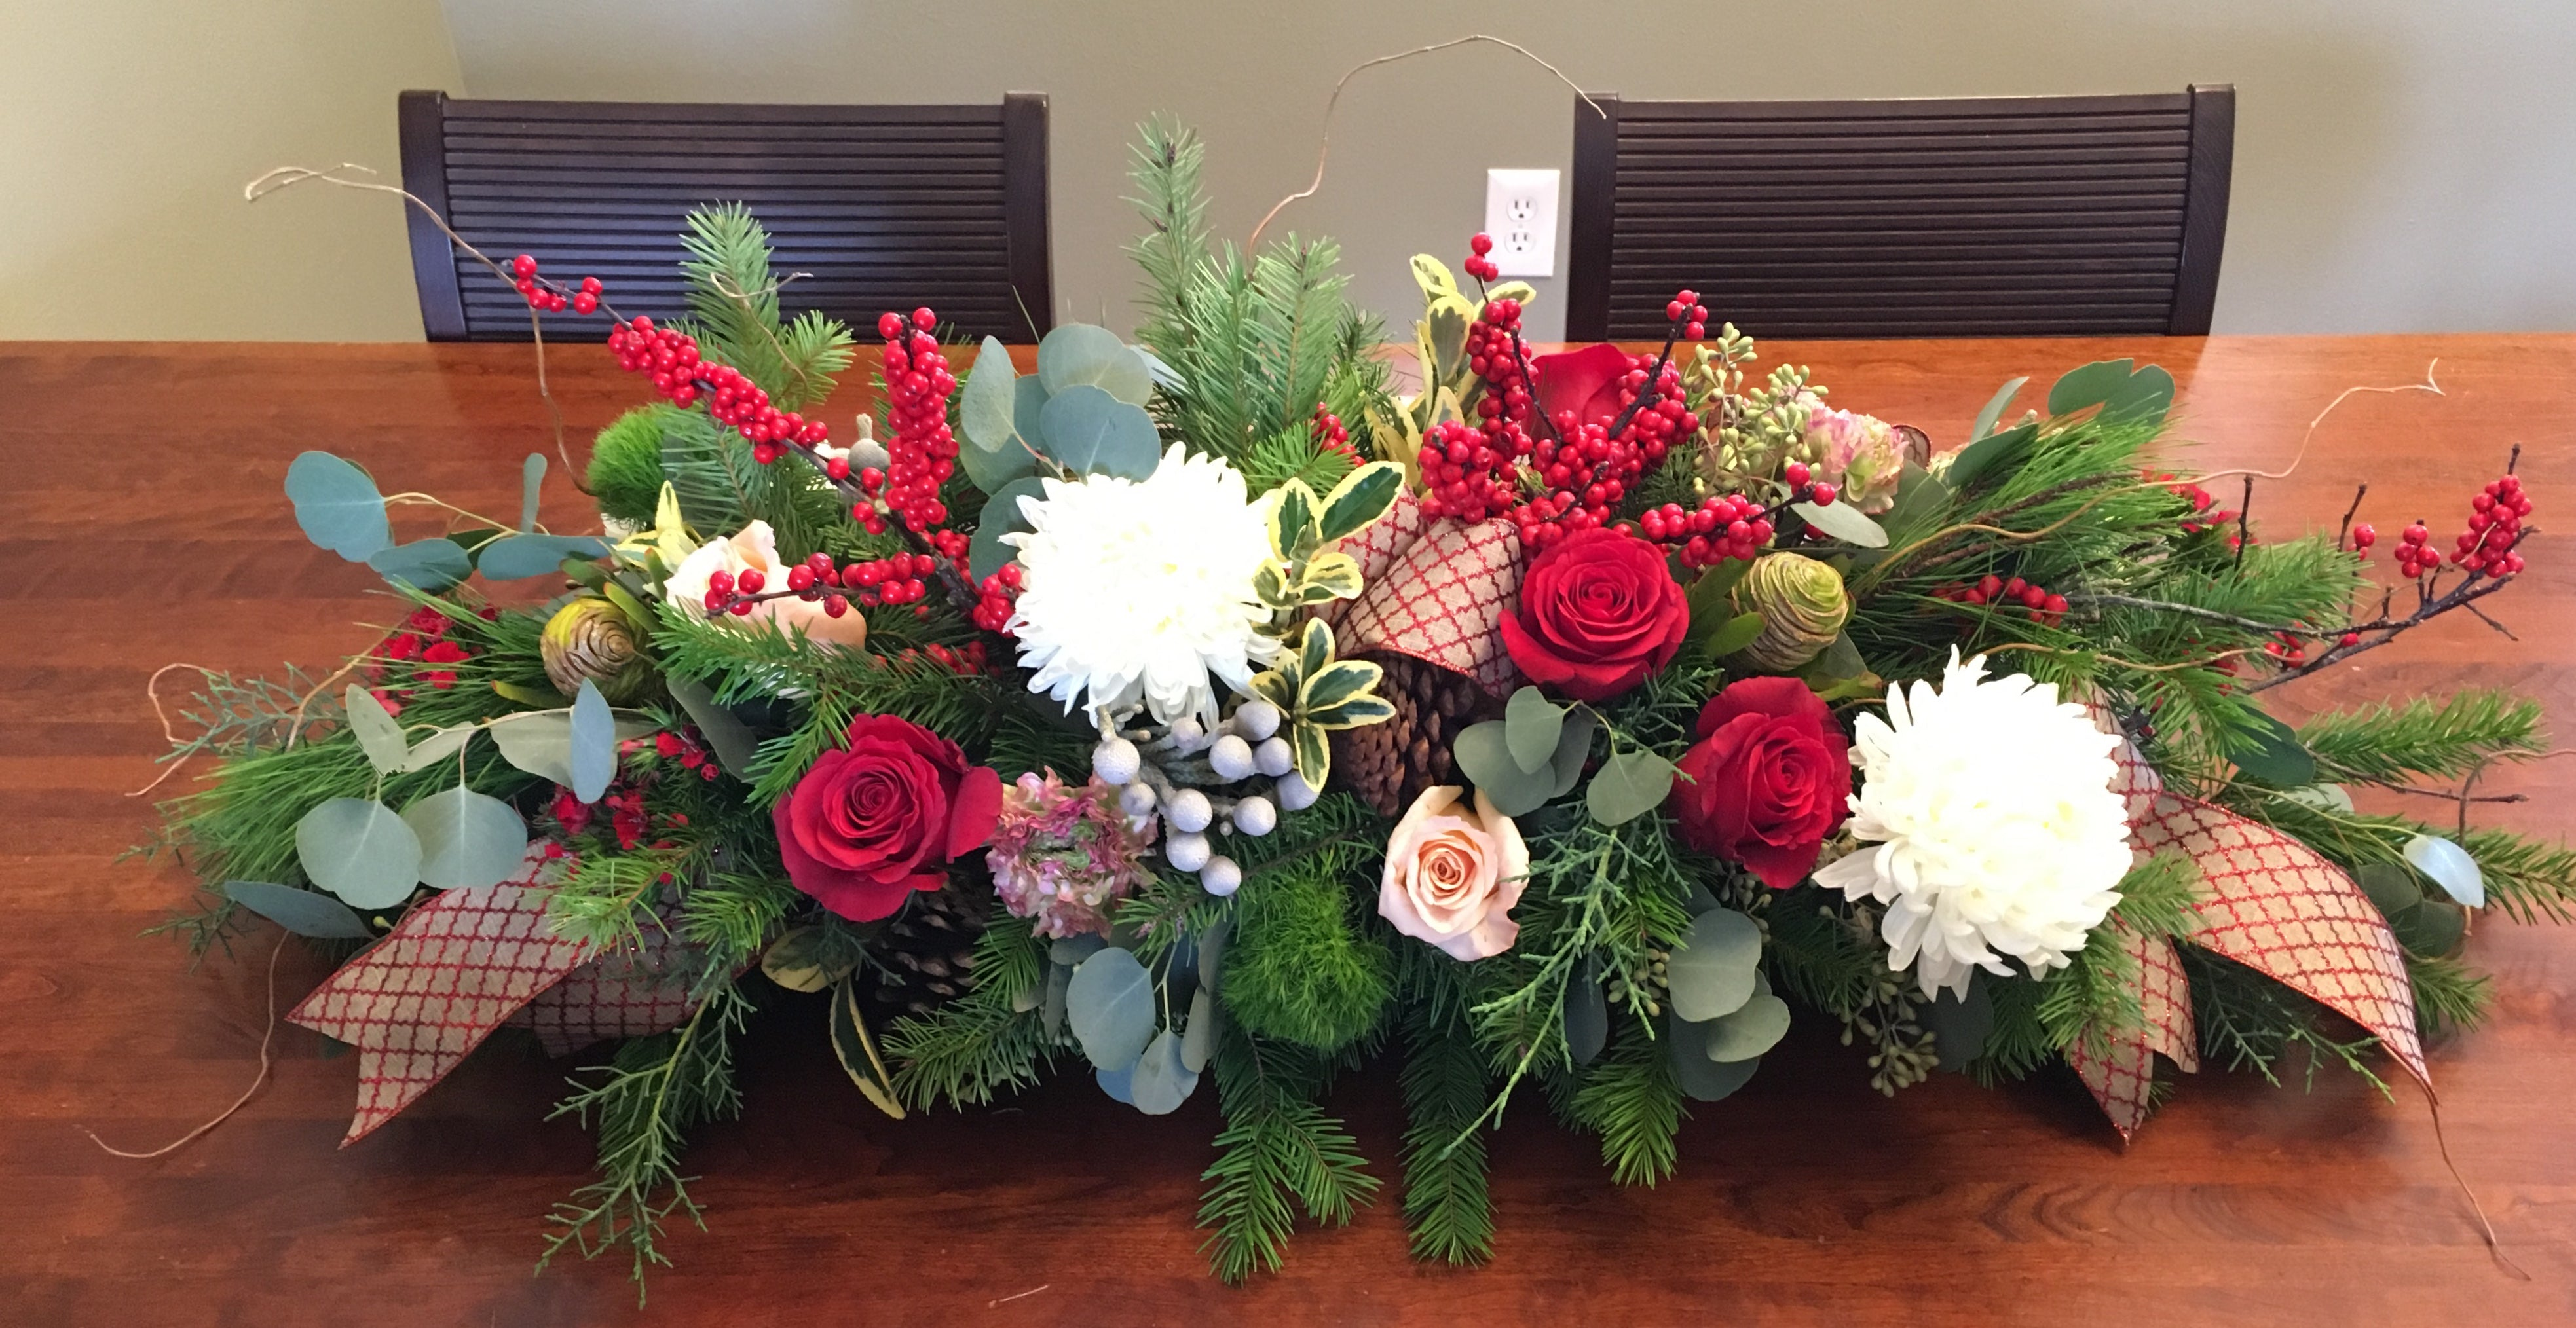 Large Christmas Centerpiece 36 Inches Long Brighter Day Floral Design